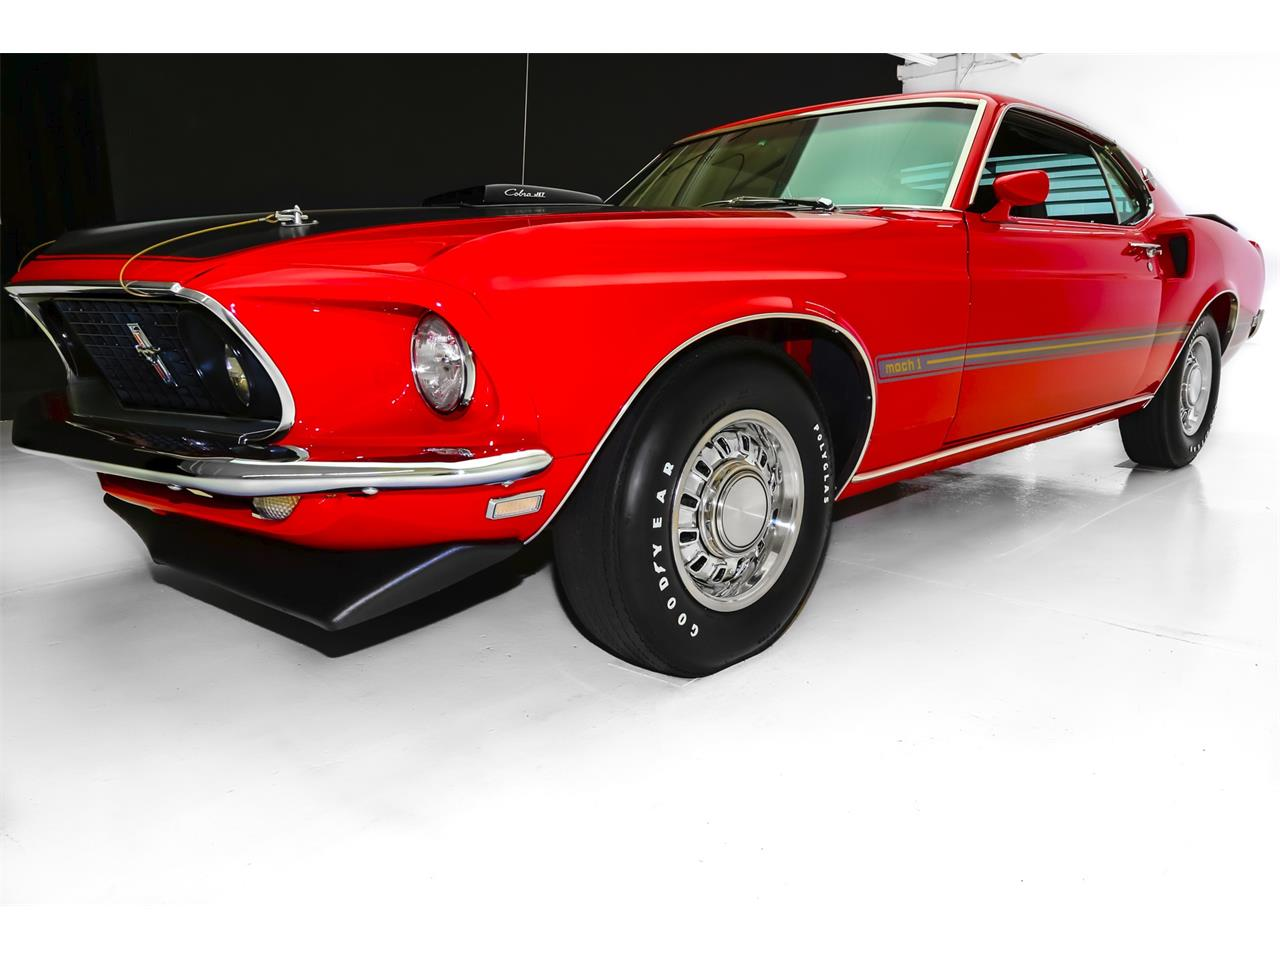 Large Picture of '69 Ford Mustang located in Iowa - $69,900.00 - LEMI